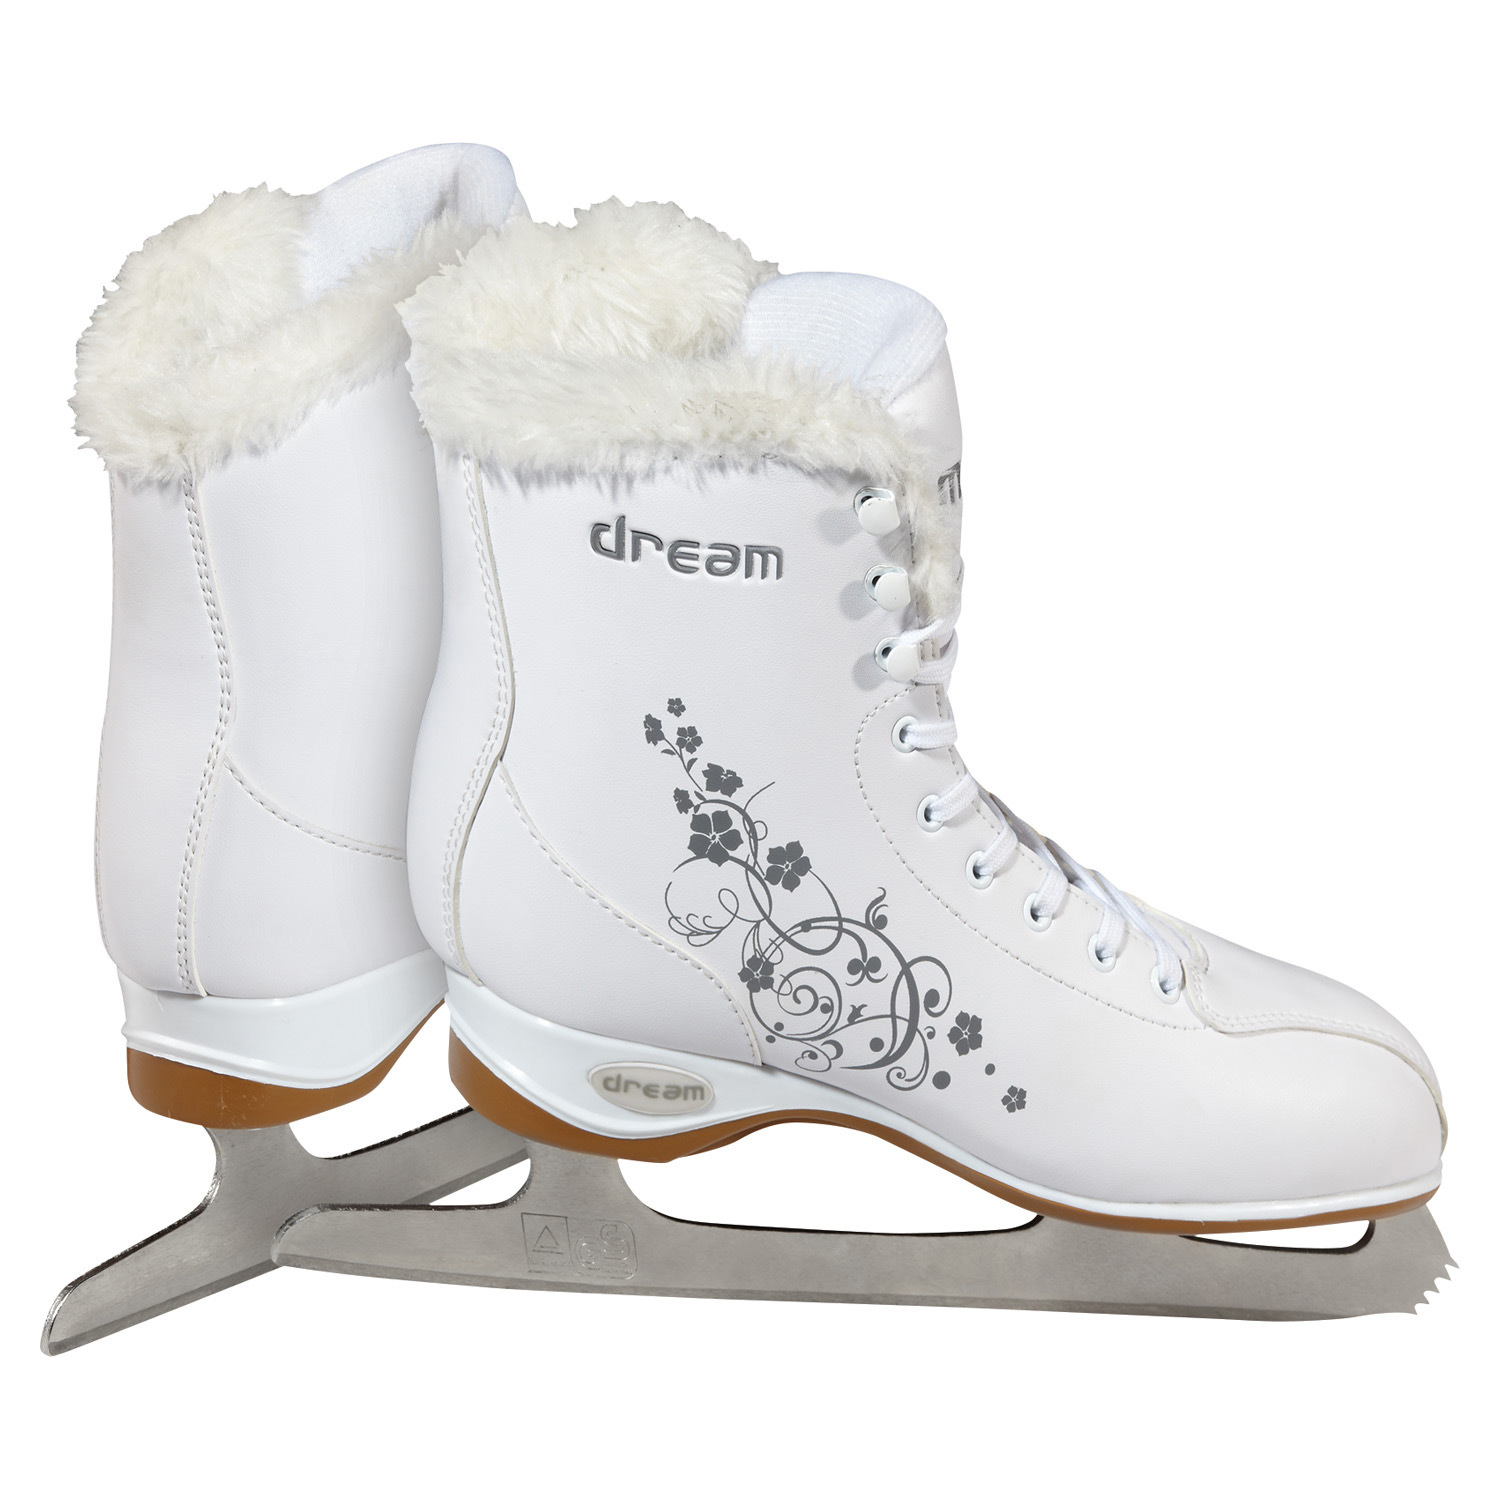 Vic dream ii quipement patins de loisirs intersport - Patin antiderapant chaussure ...